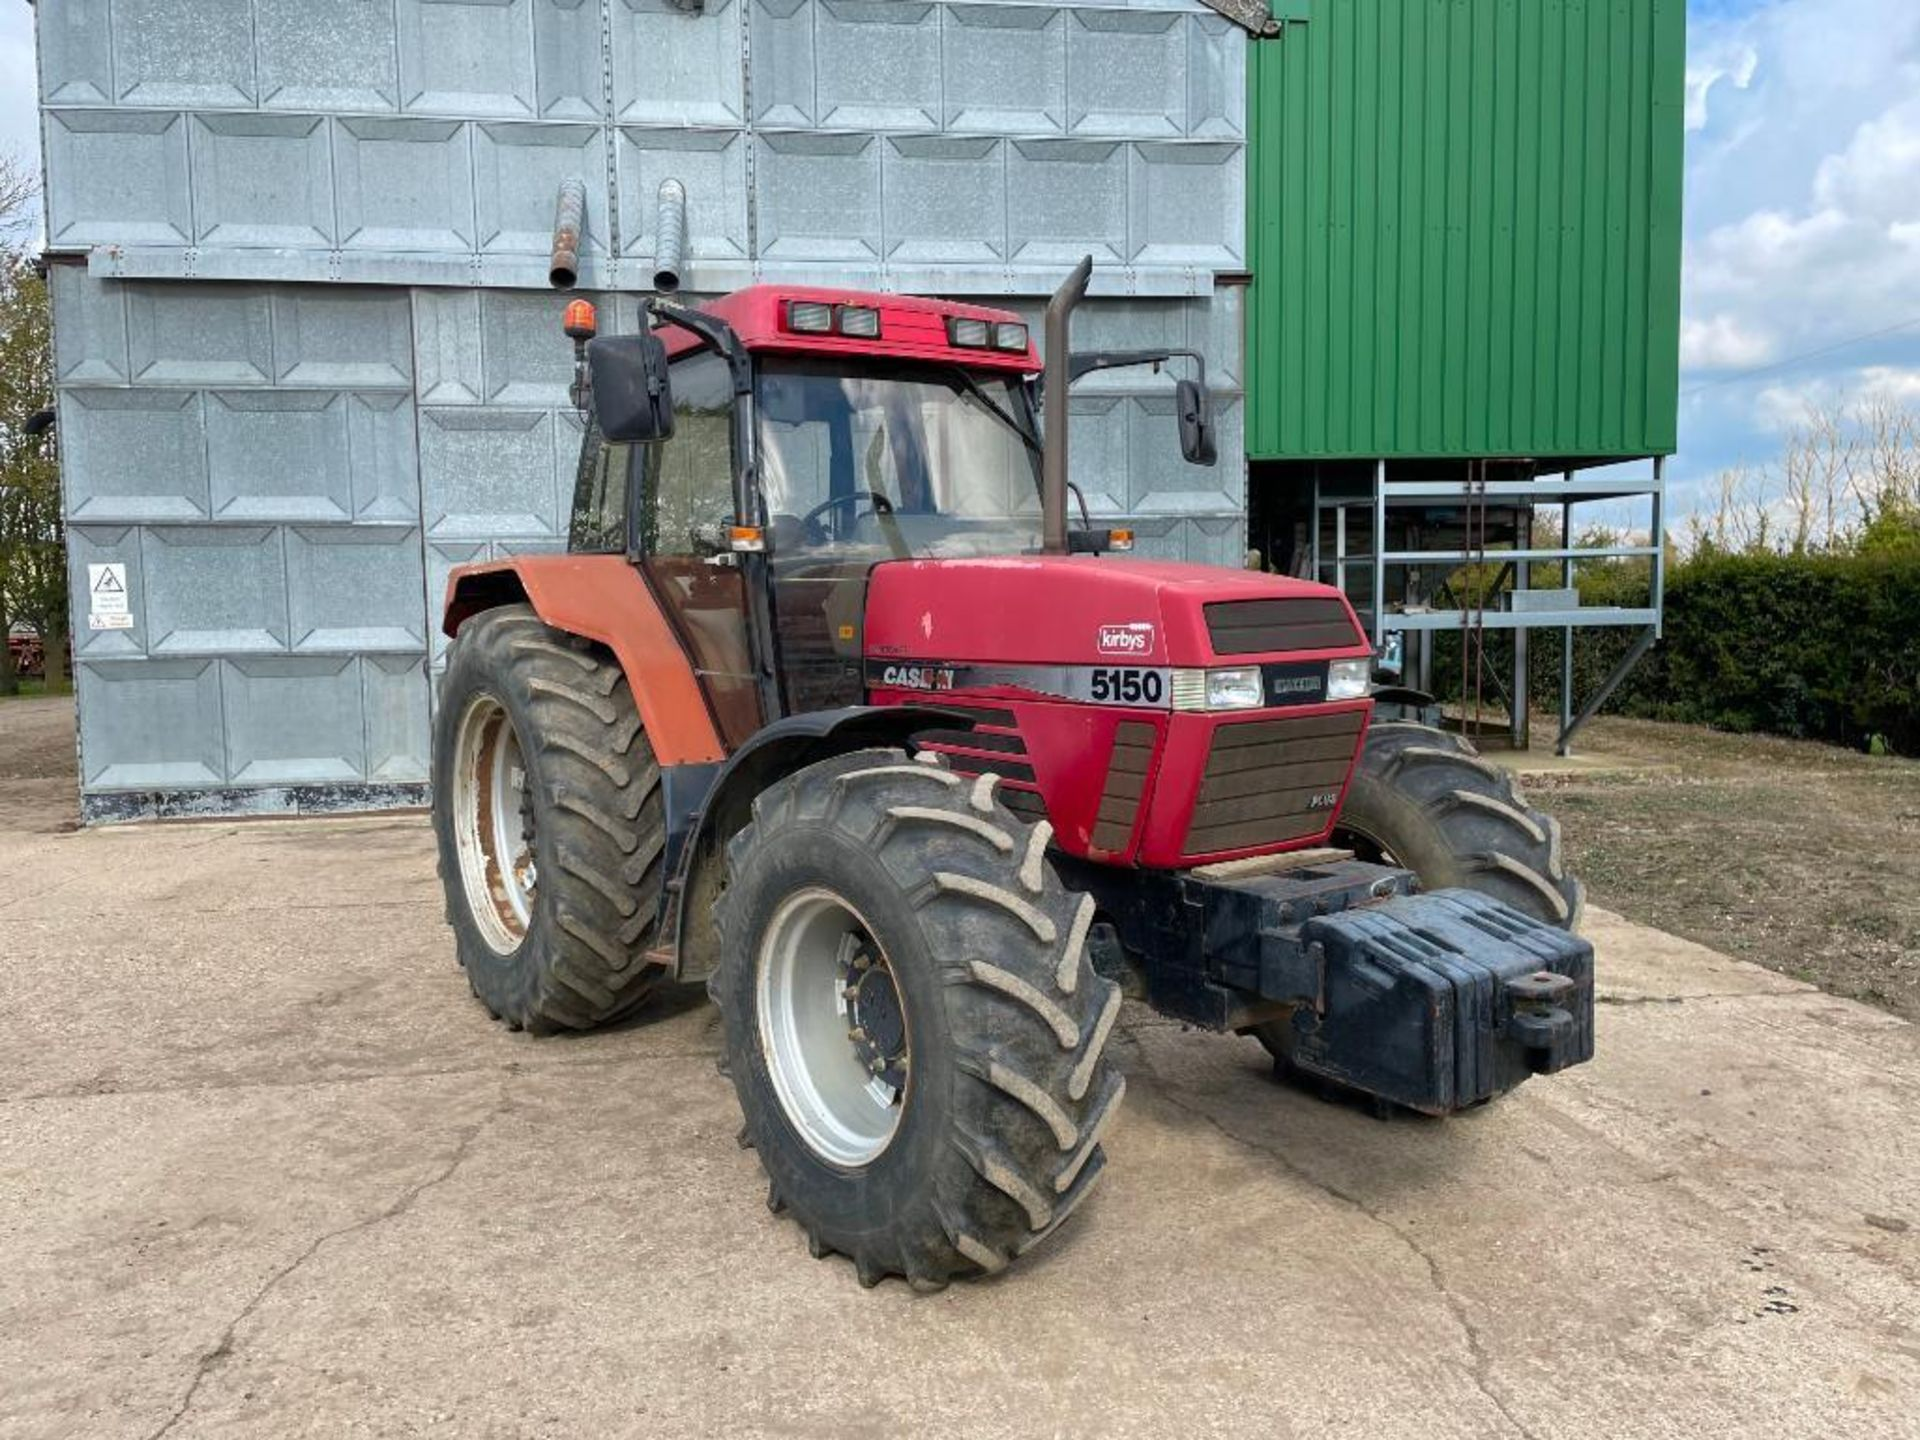 1997 Case IH 5150 Maxxum Plus Powershift 4wd tractor with 2 spools, PUH and front wafer weights on 1 - Image 11 of 13